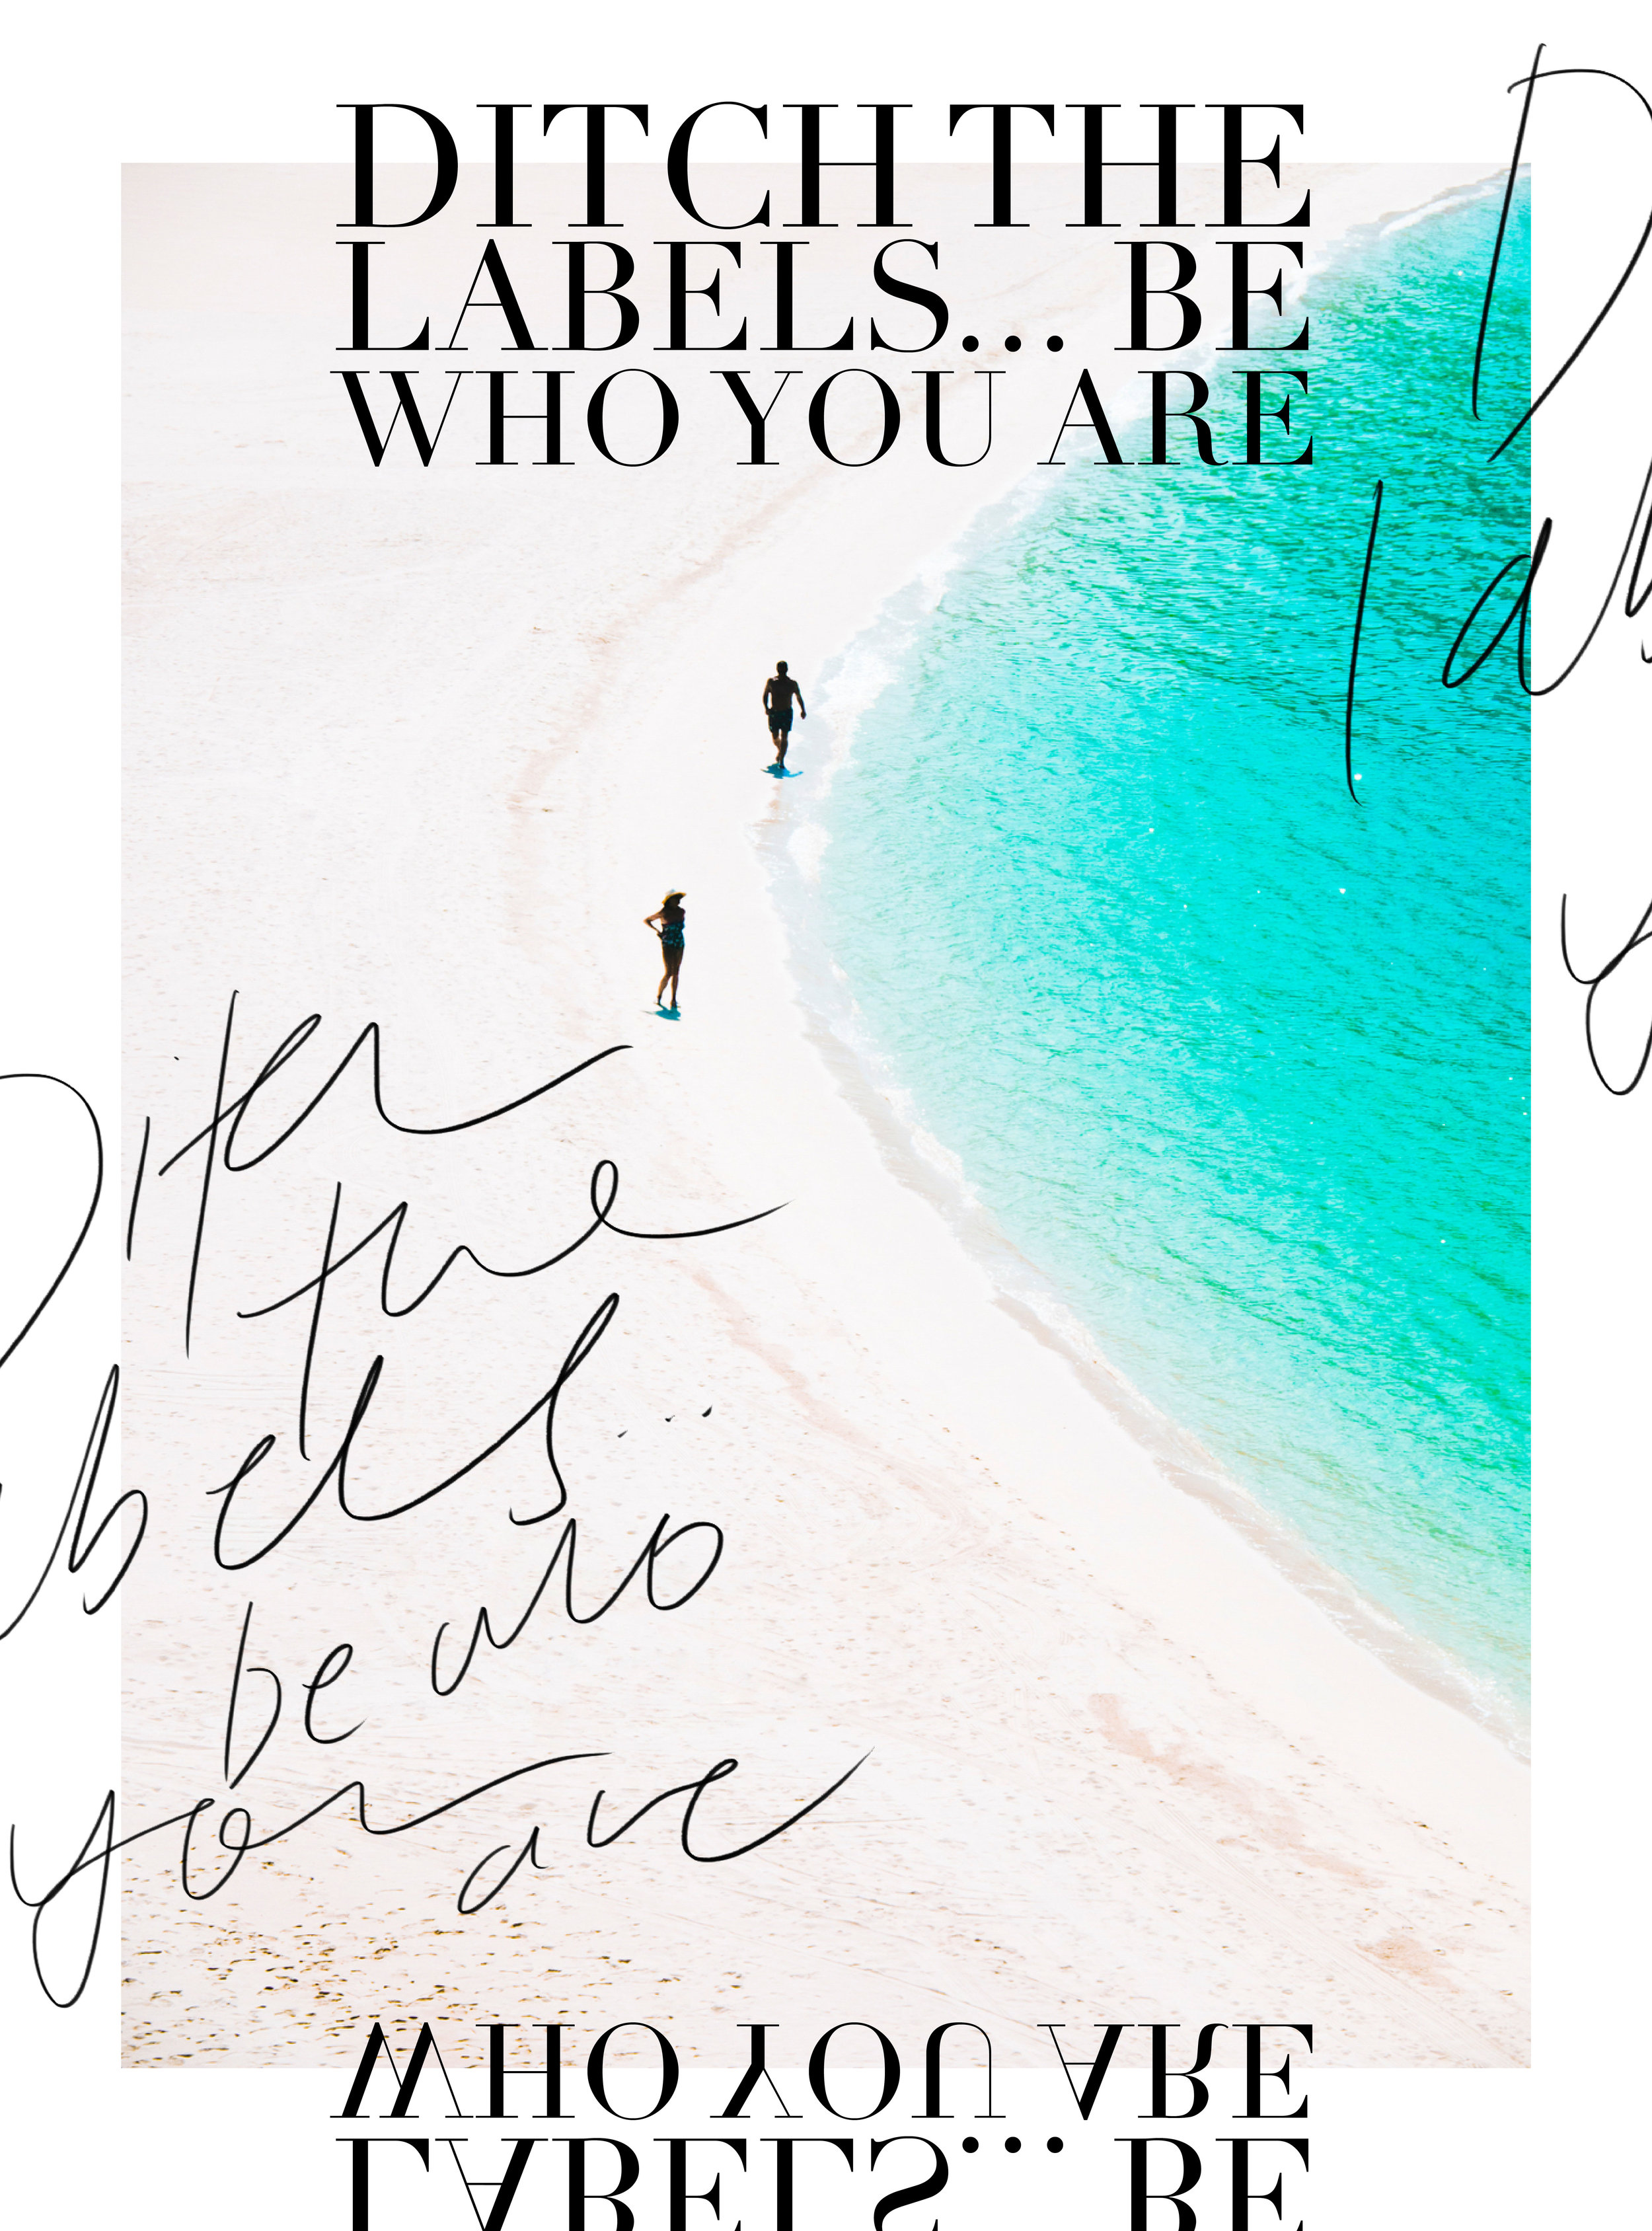 Ditch the labels… Be who you are | freshbysian.com